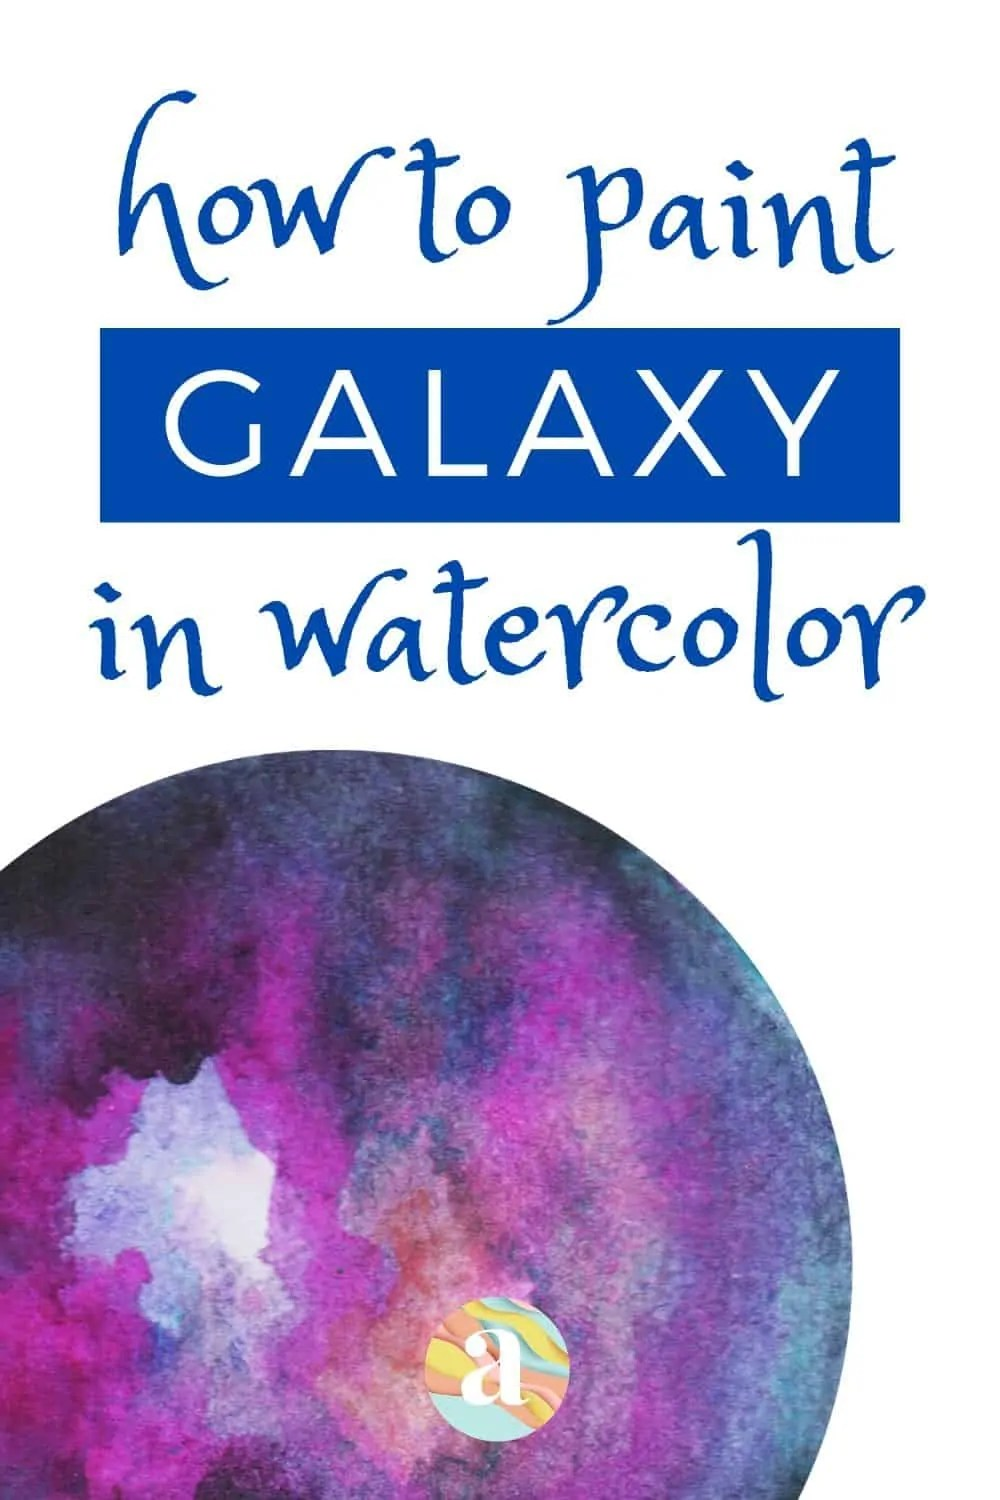 10 Ideas for Your Next Watercolor Painting 9